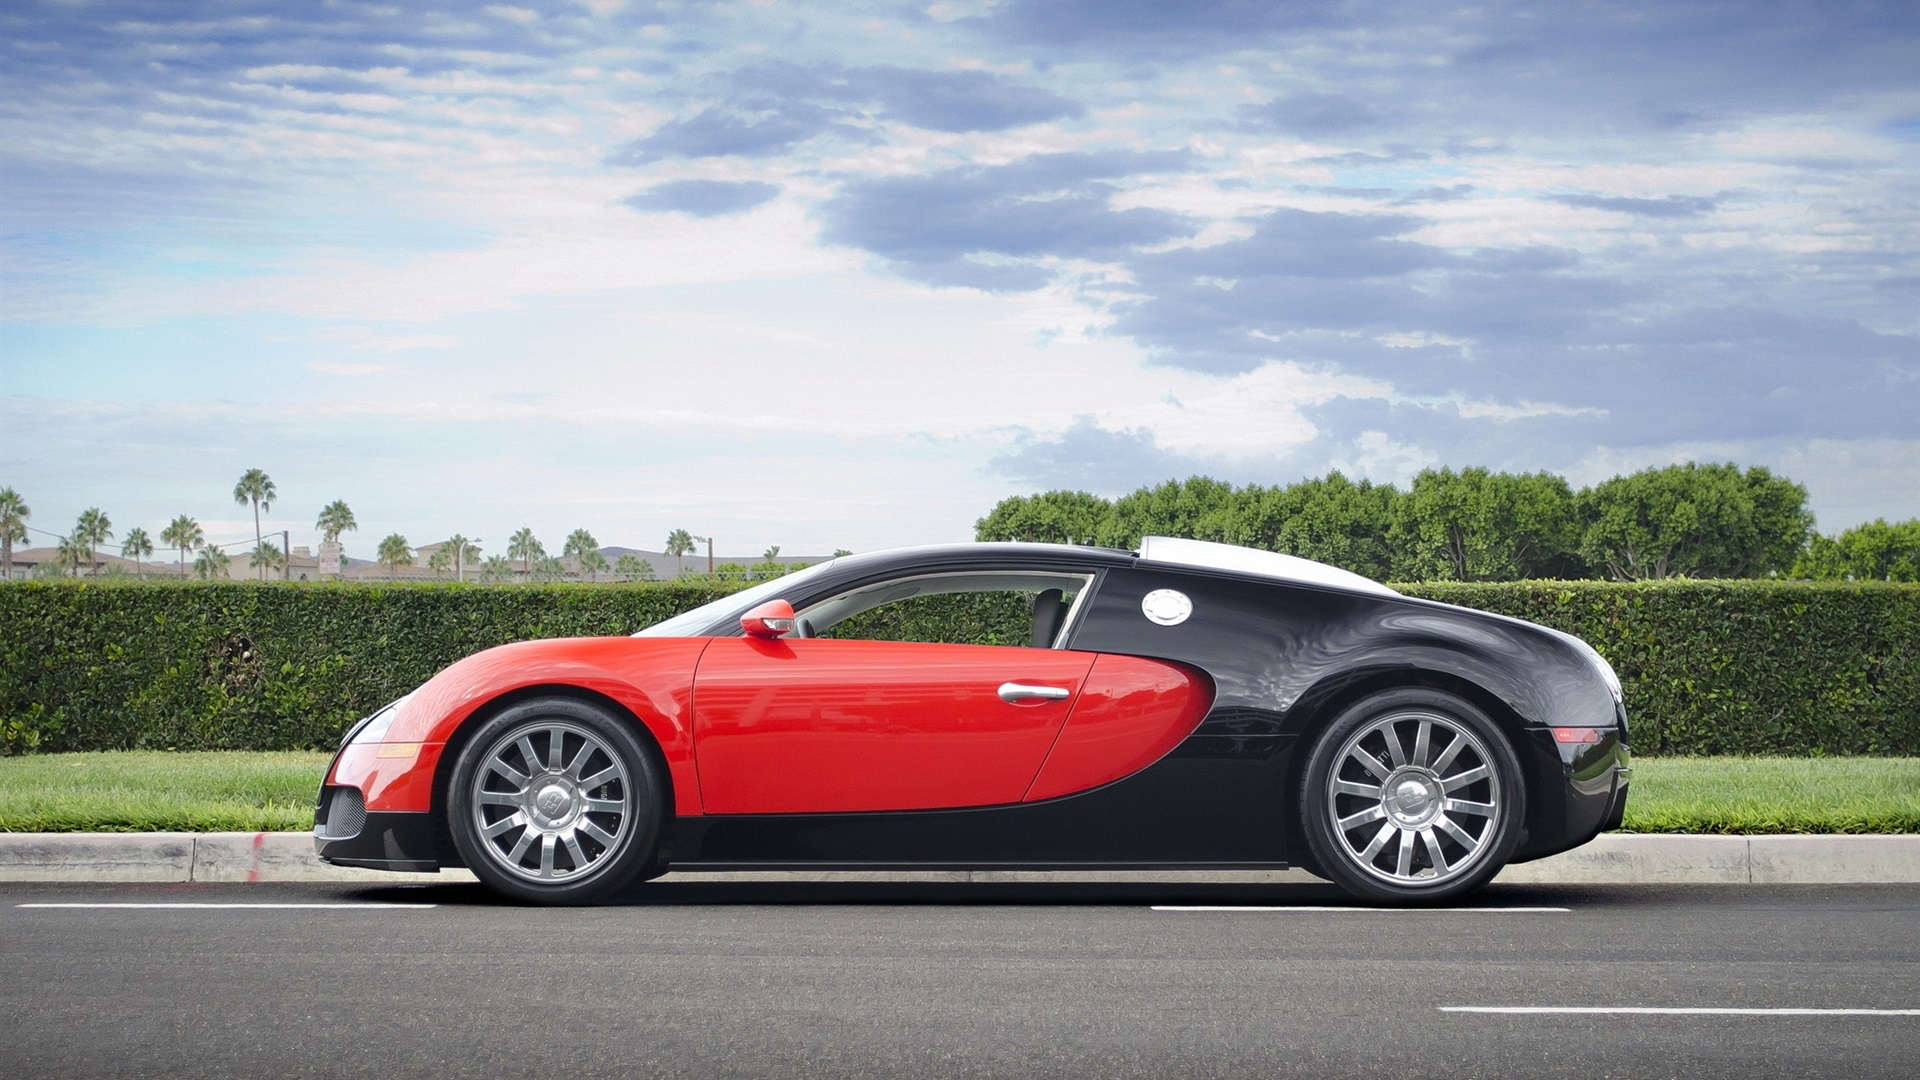 Hd wallpaper red and black - Bugatti Veyron Supersportwagen Rot Schwarz